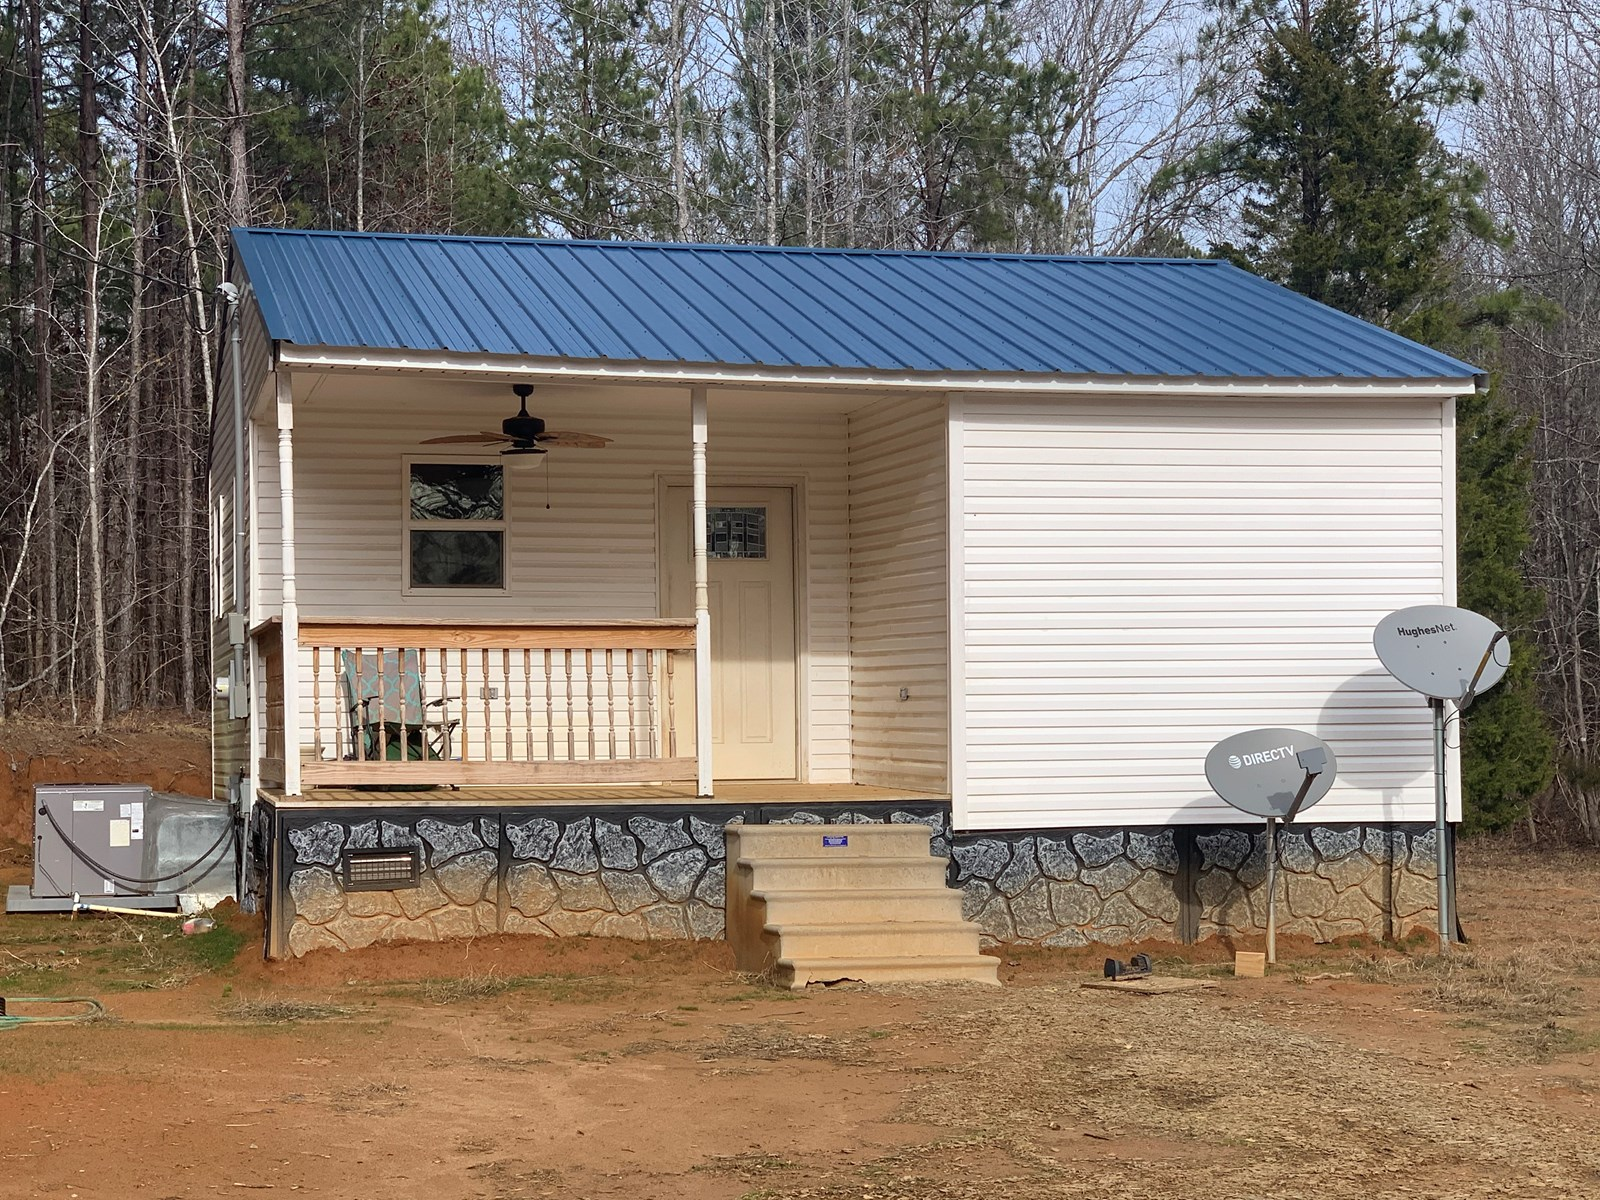 PRIVATE TINY HOME FOR SALE IN TENNESSEE WITH ACREAGE